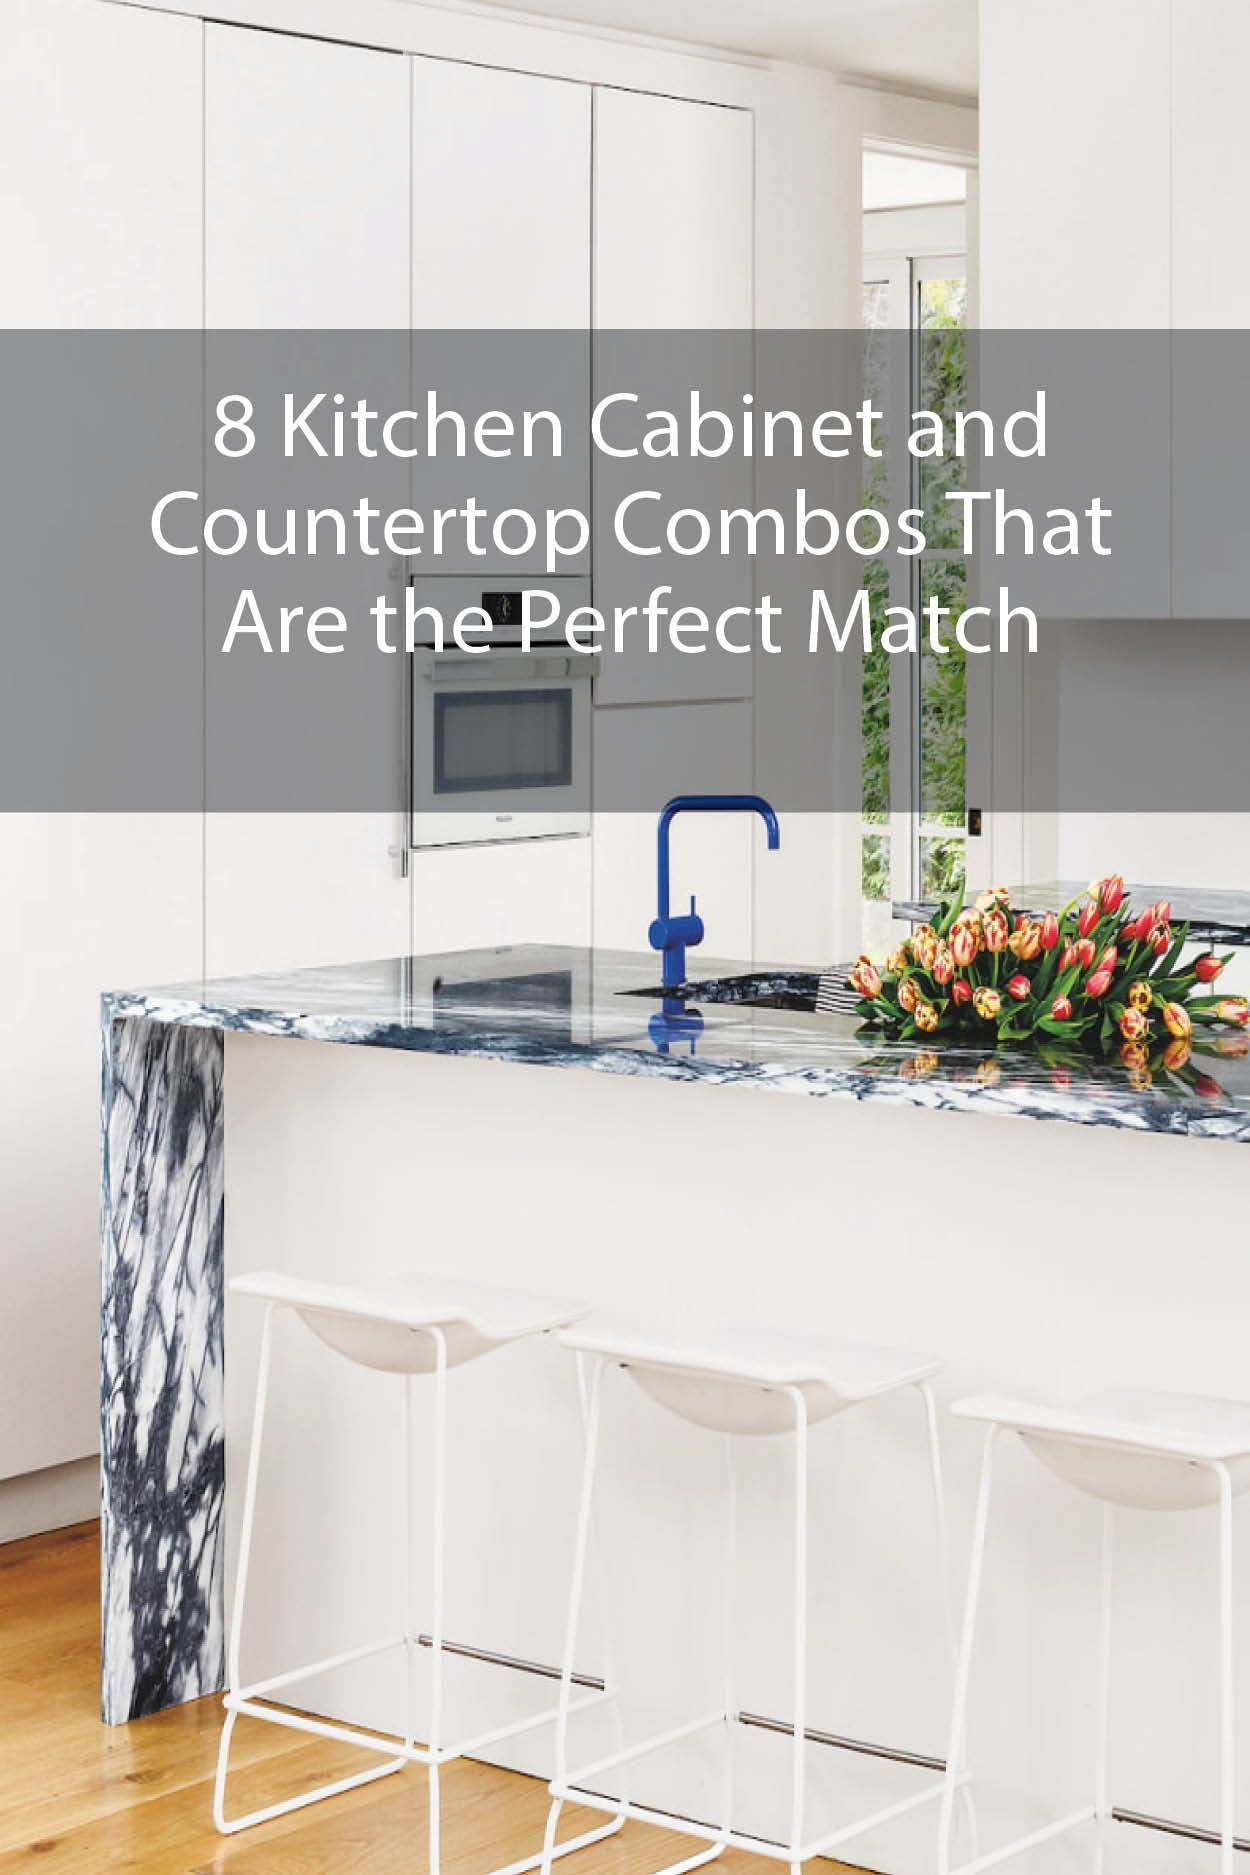 8 Kitchen Cabinet And Countertop Combos That Are The Perfect Match In 2020 Kitchen Cabinets And Countertops Cabinets And Countertops Countertops